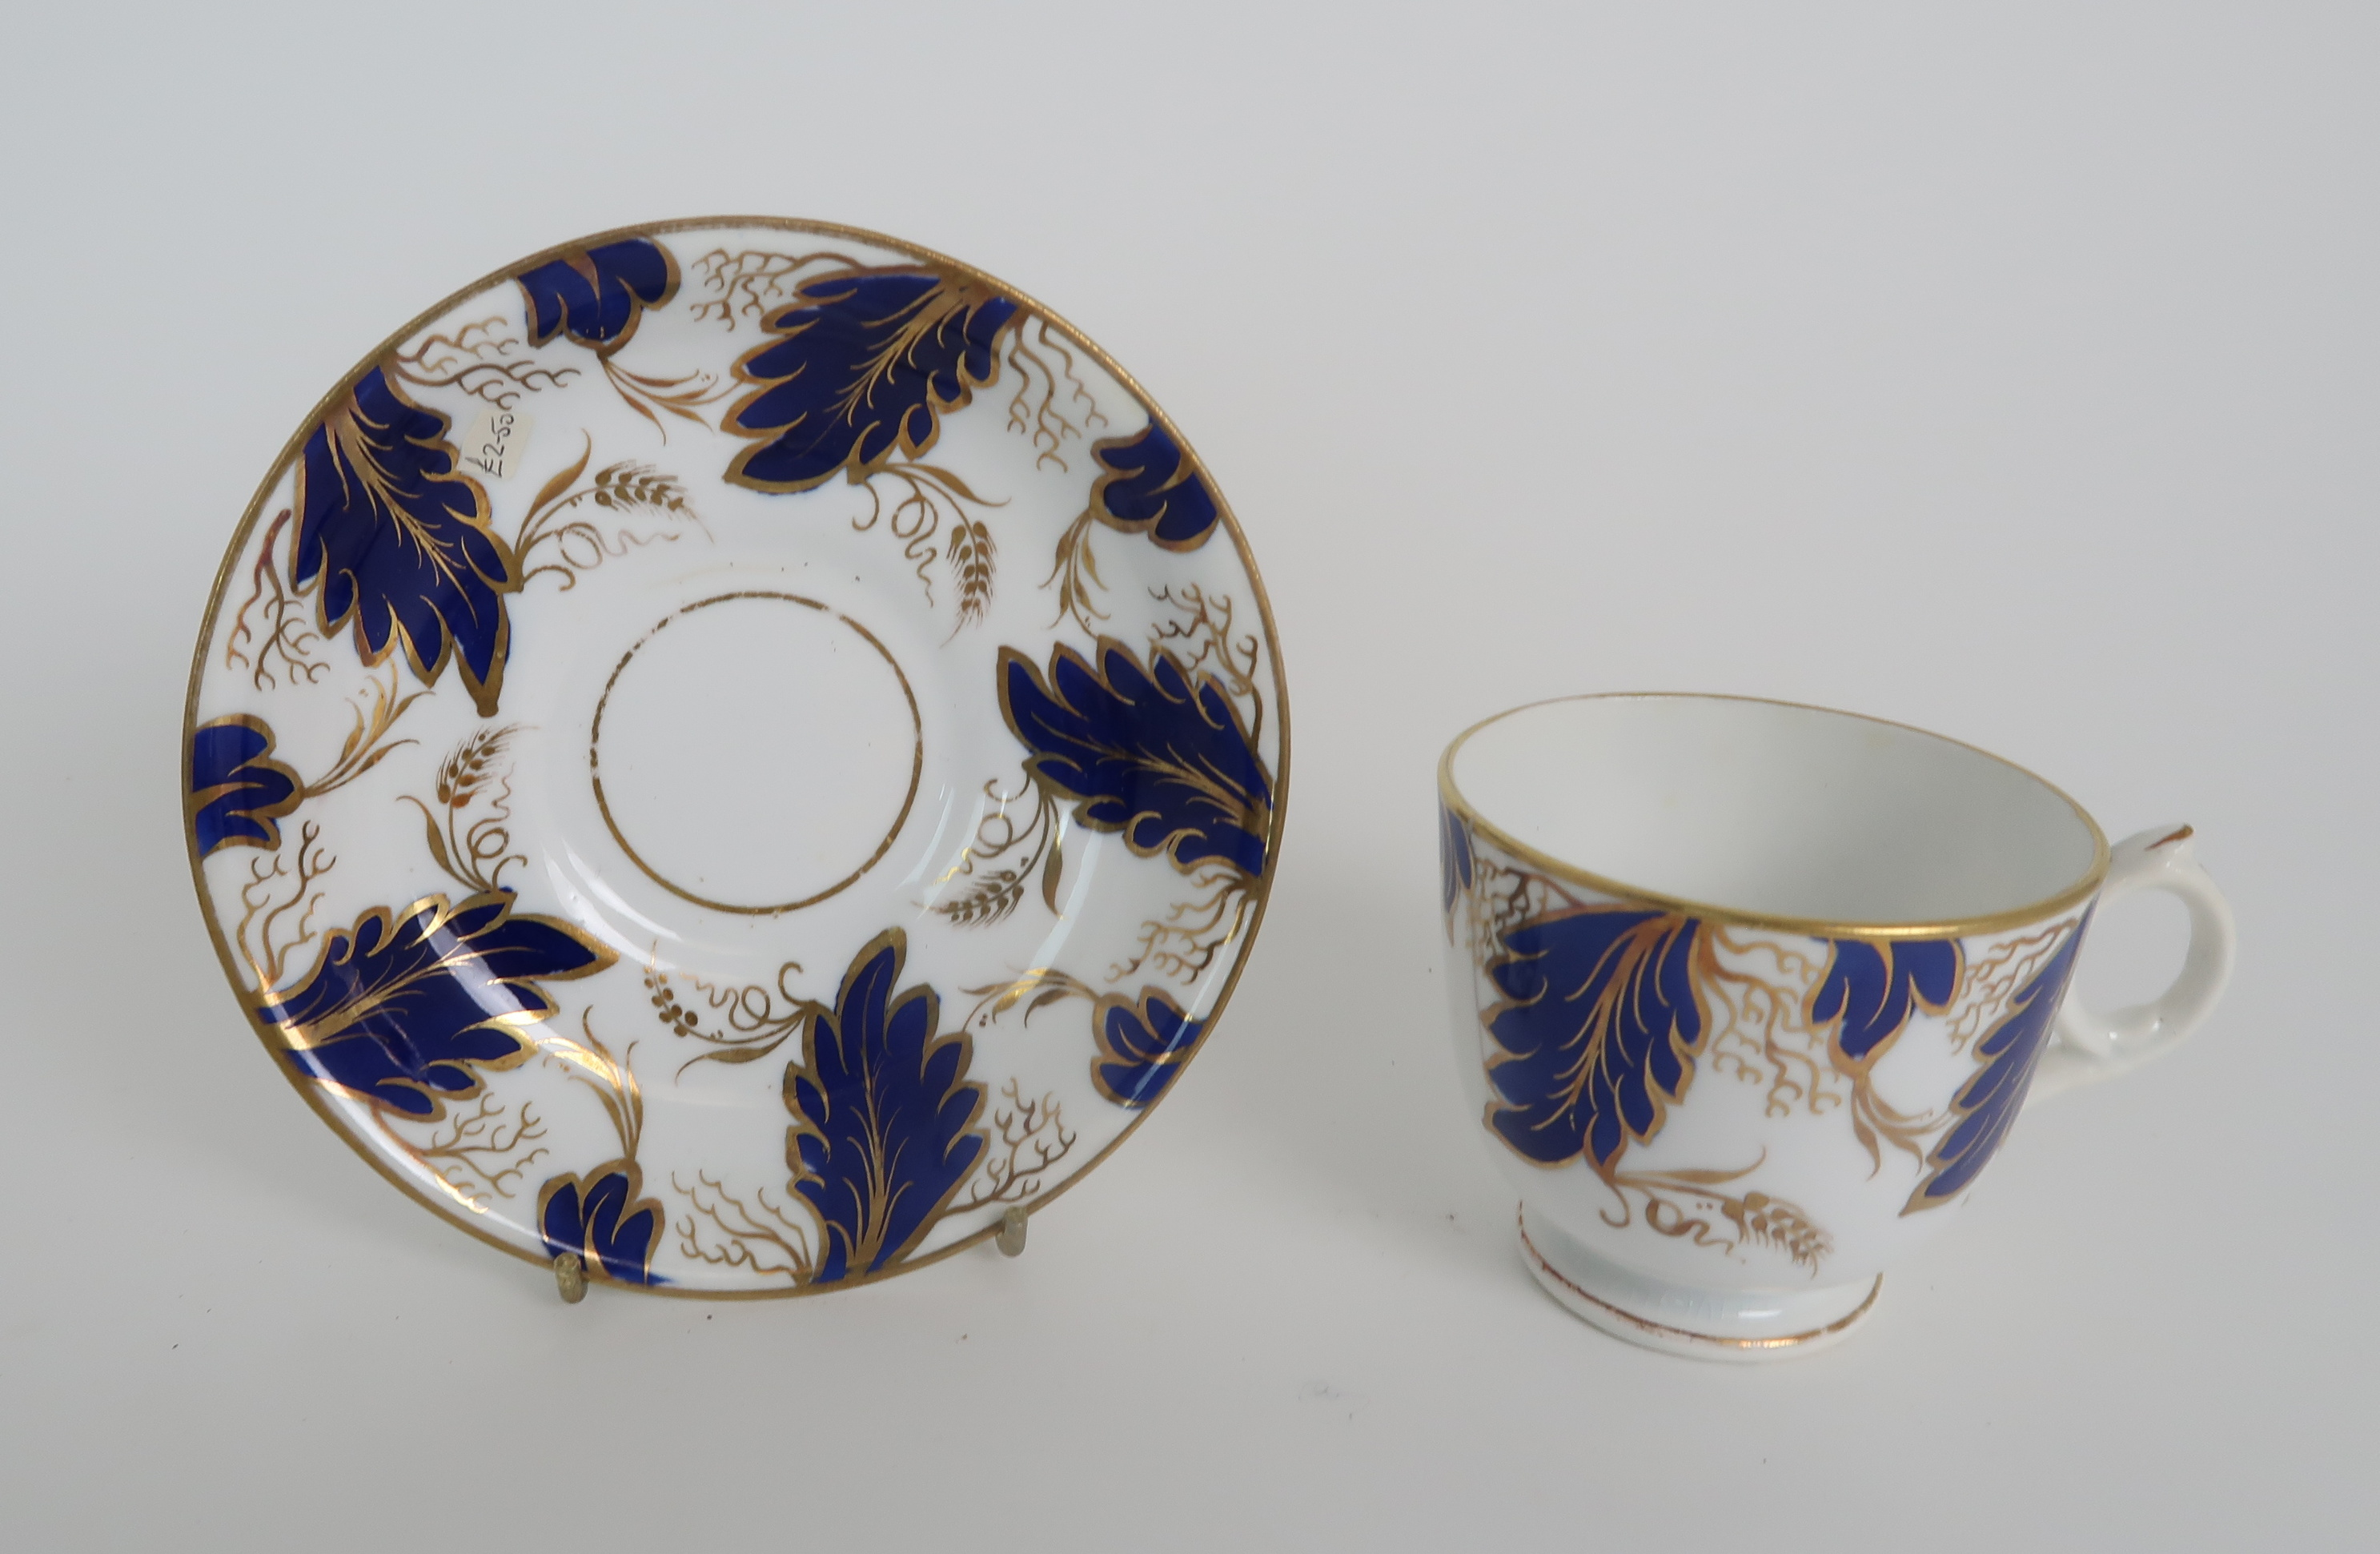 A COLLECTION OF 19TH CENTURY ENGLISH BLUE AND GILT DECORATED TEA AND COFFEE WARES including a - Image 16 of 23